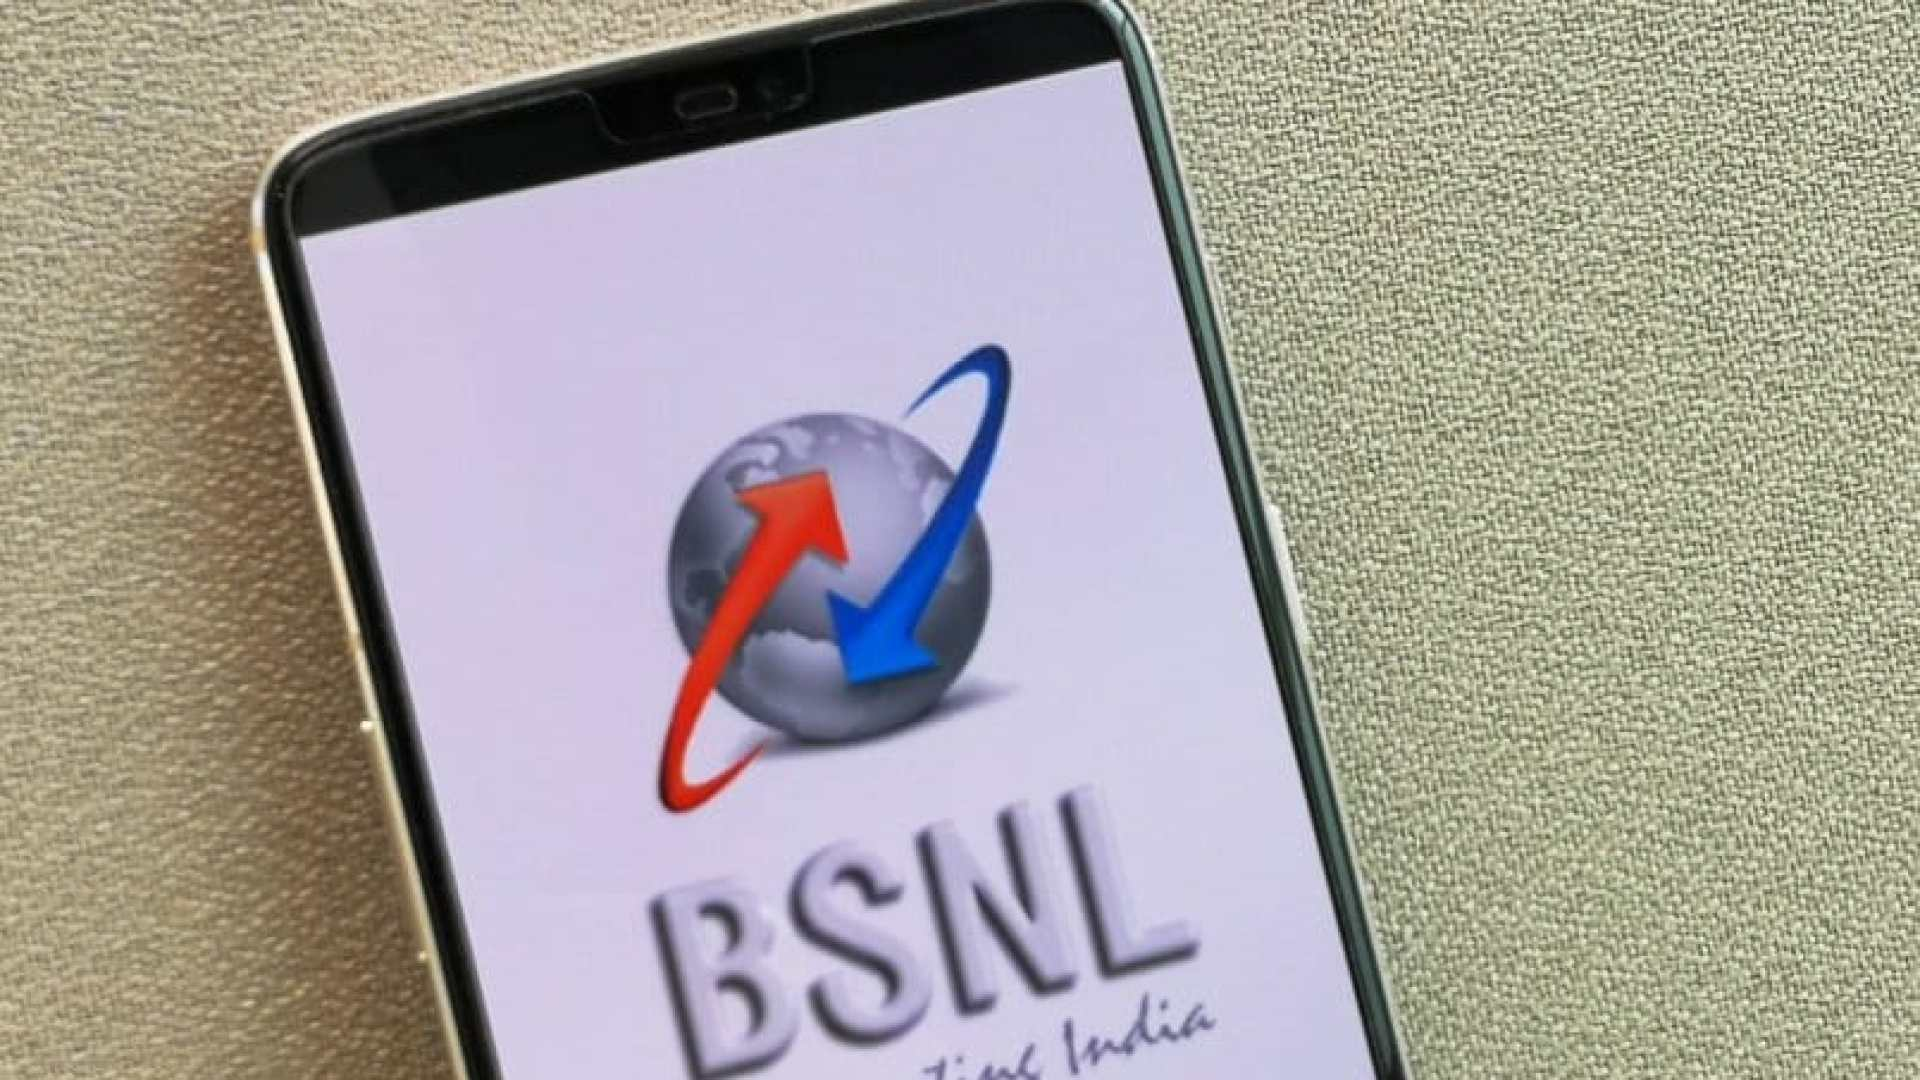 BSNL's Rs 2,099 prepaid plan now offers 6.1GB daily data